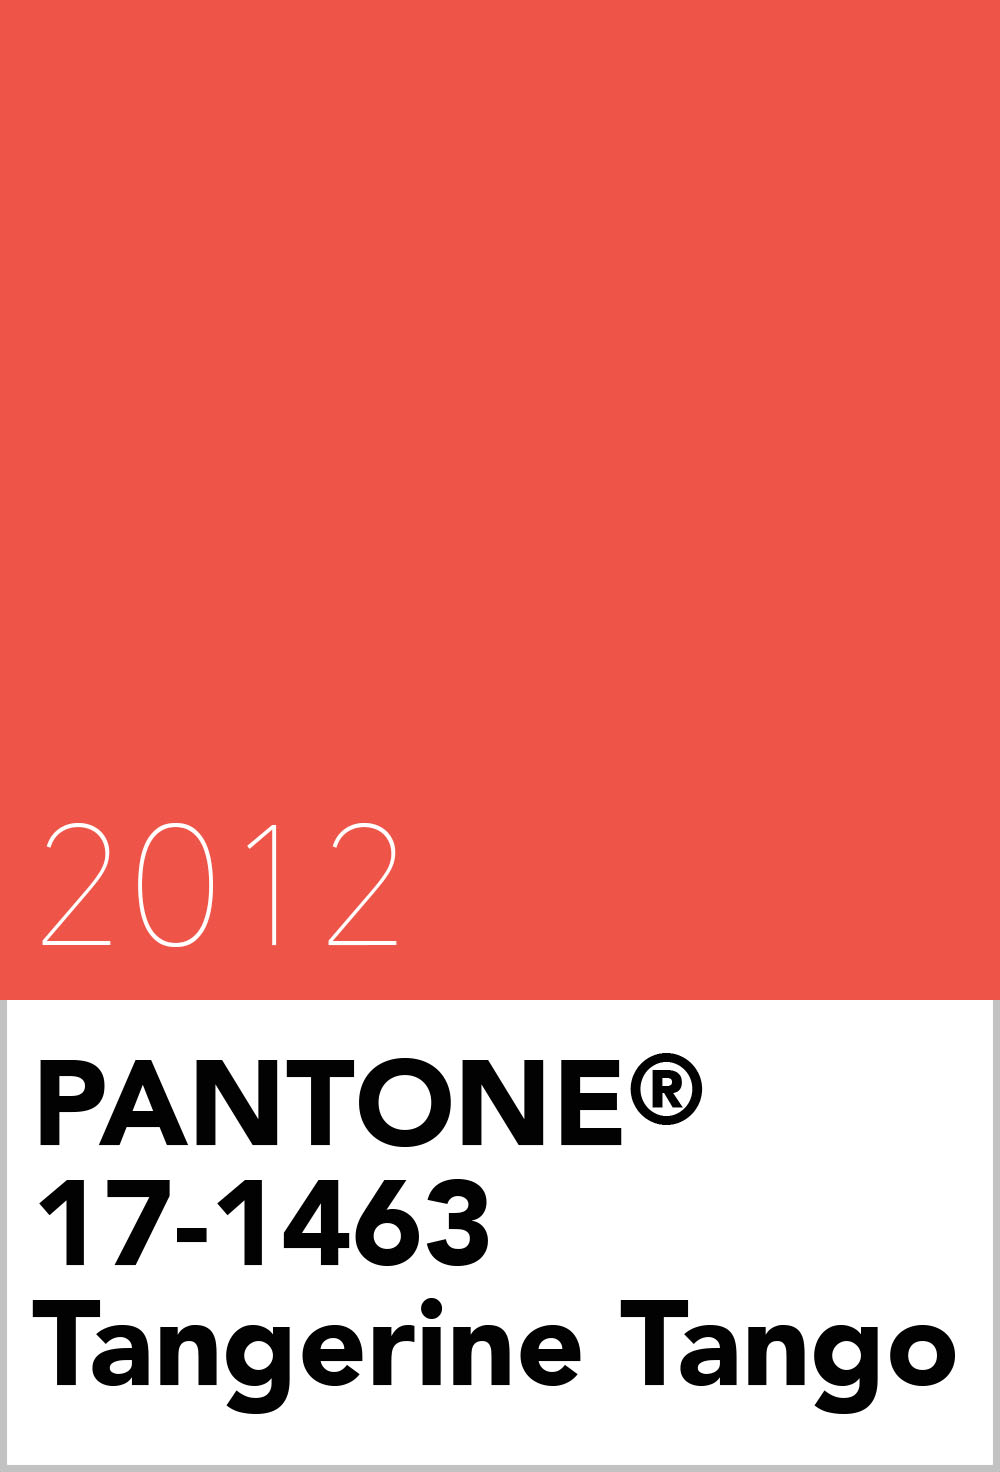 pantone colour of the year 2012